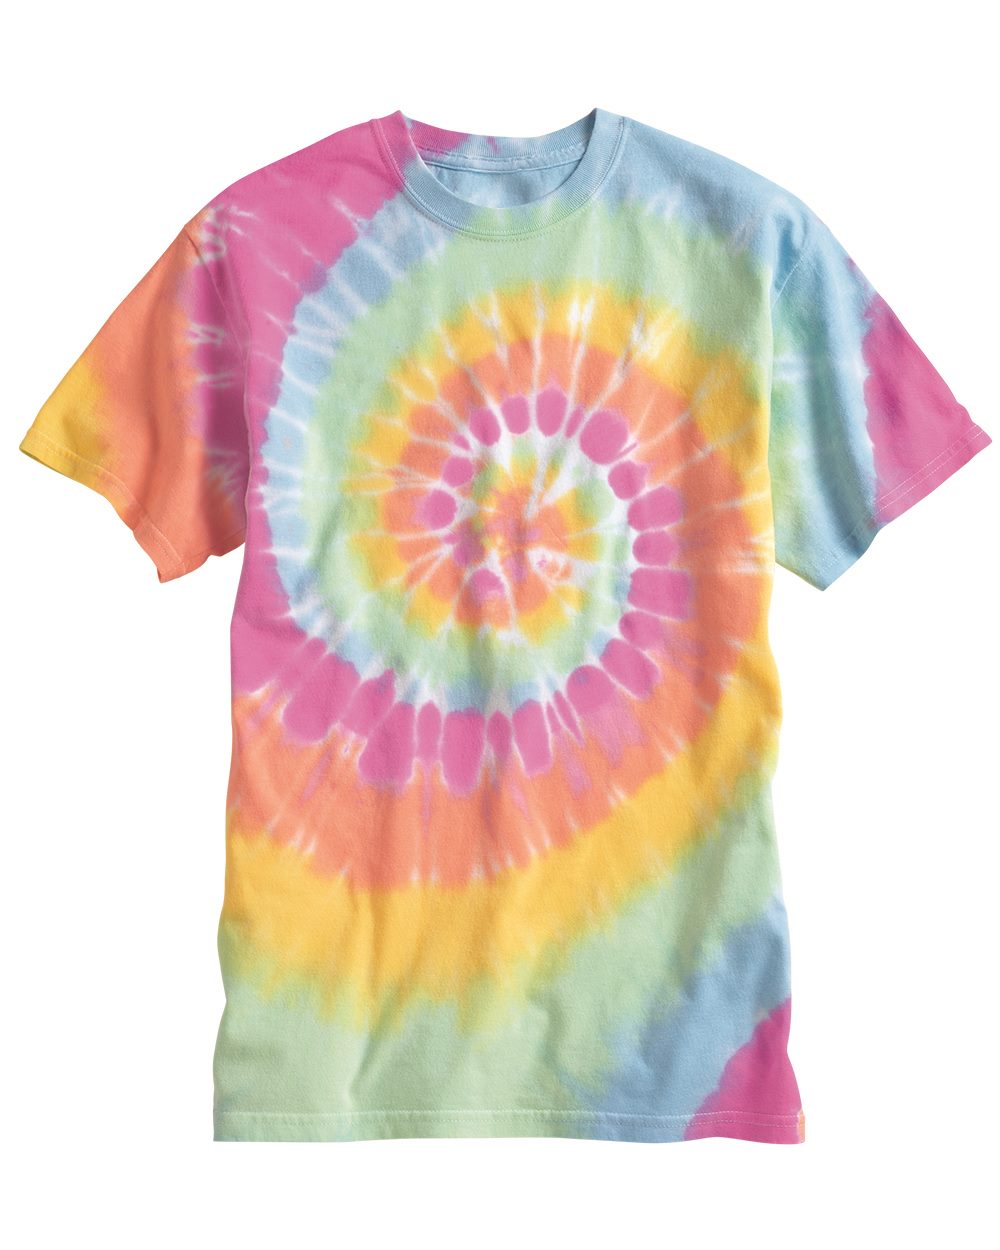 4ef256cacf22 Dyenomite 200MS Multi-Color Spiral Short Sleeve T-Shirt $9.95 - T Shirts